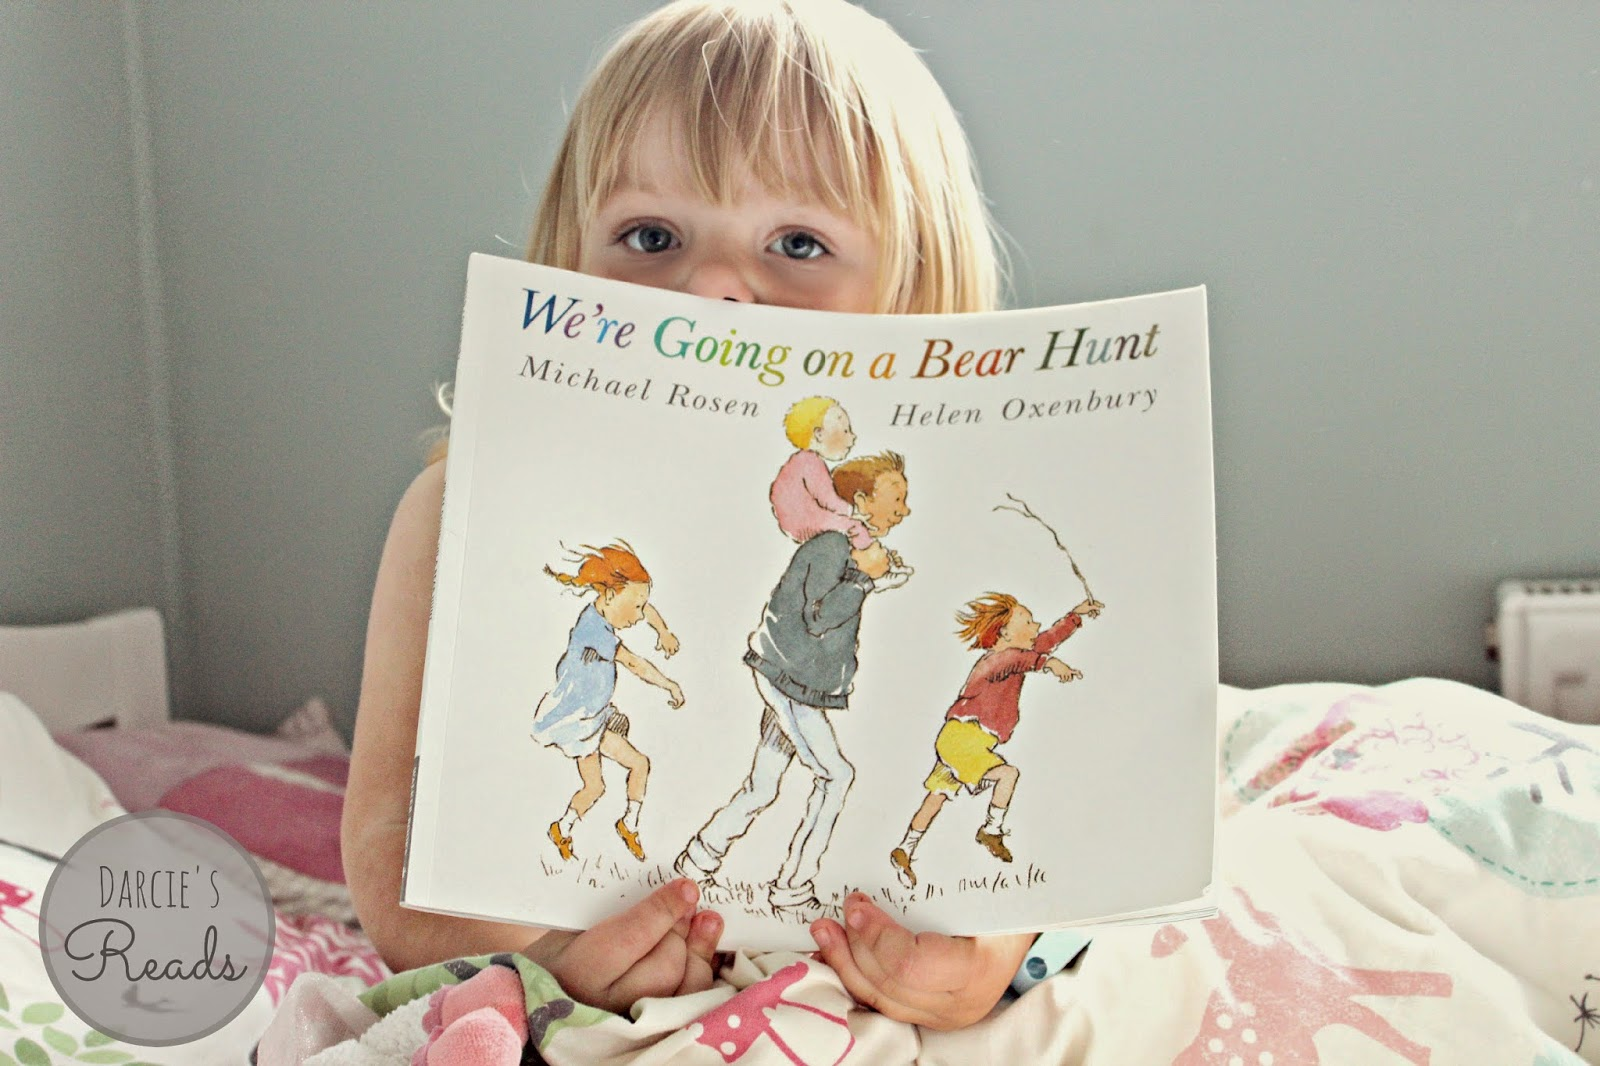 We're going on a bear hunt review